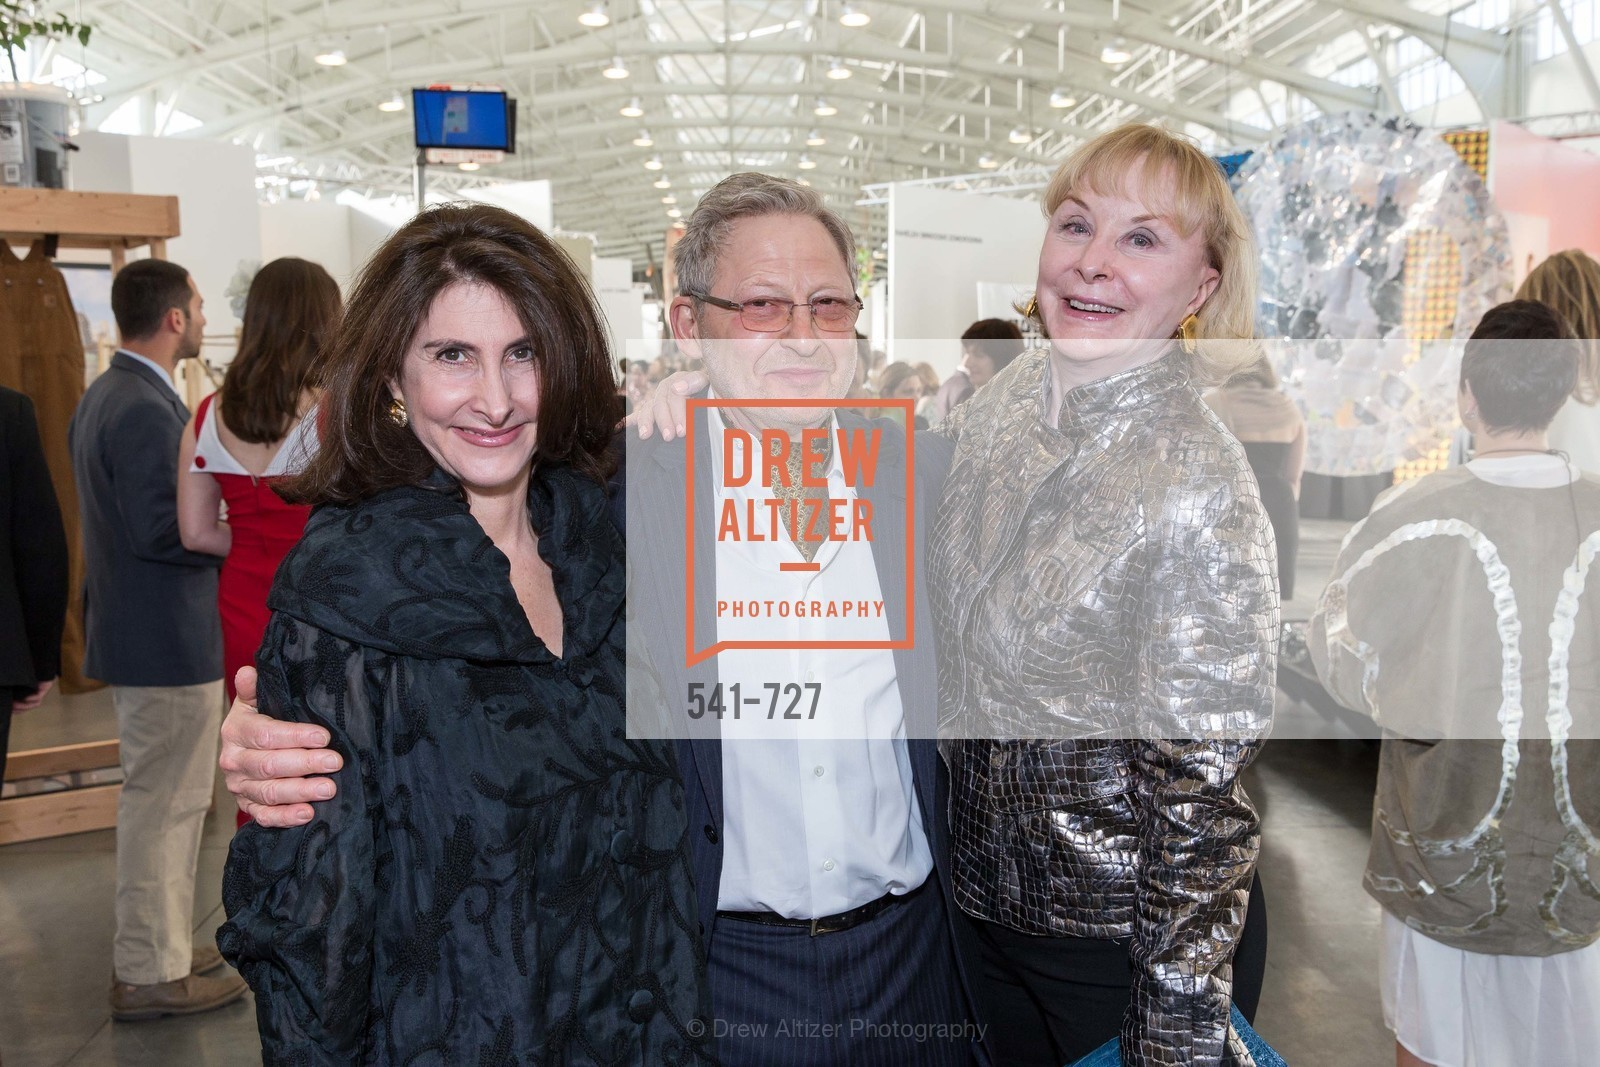 Leslie Meyerovich, Alex Meyerovich, Shelby Gans, SAN FRANCISCO ART INSTITUTE Gala Honoring Art Visionary and Advocate ROSELYNE CHROMAN SWIG, US, May 14th, 2015,Drew Altizer, Drew Altizer Photography, full-service agency, private events, San Francisco photographer, photographer california